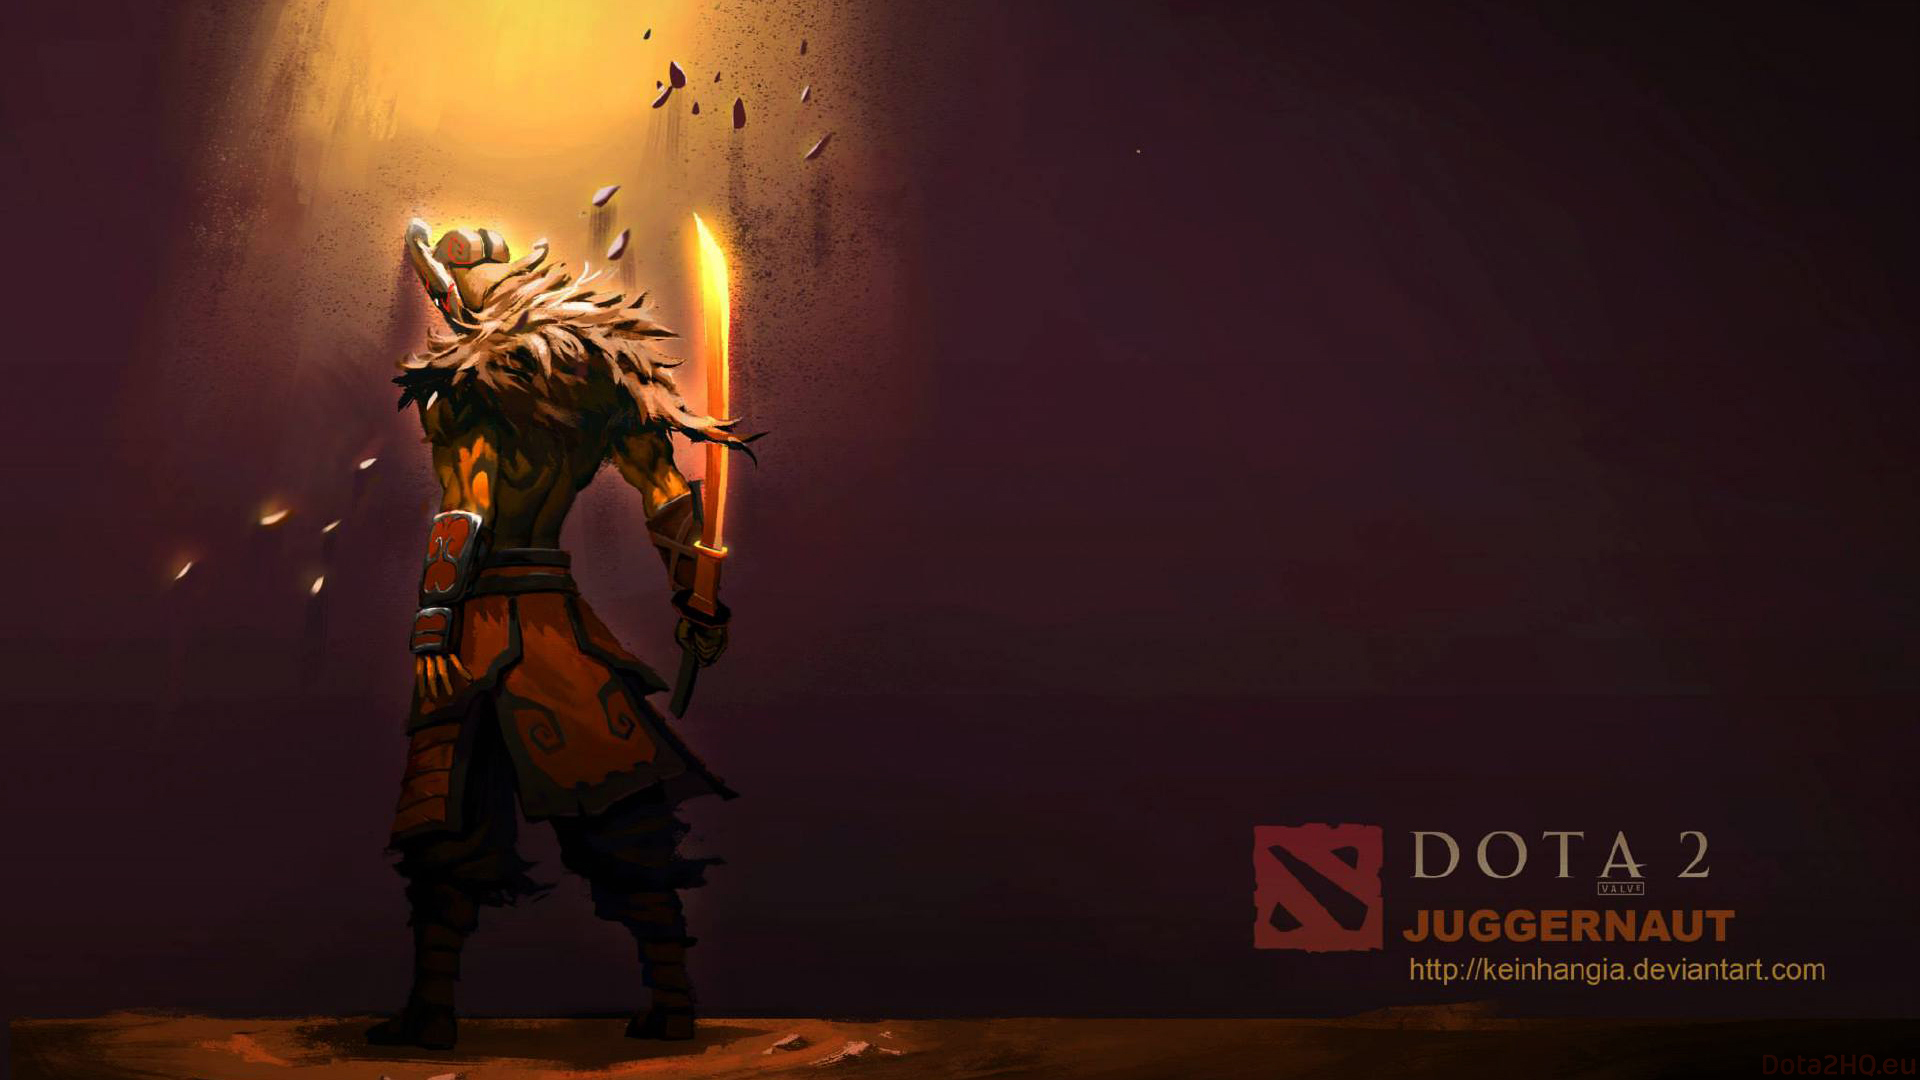 Hd wallpaper dota 2 - Hd Wallpaper Dota 2 Dota 2 Wallpaper